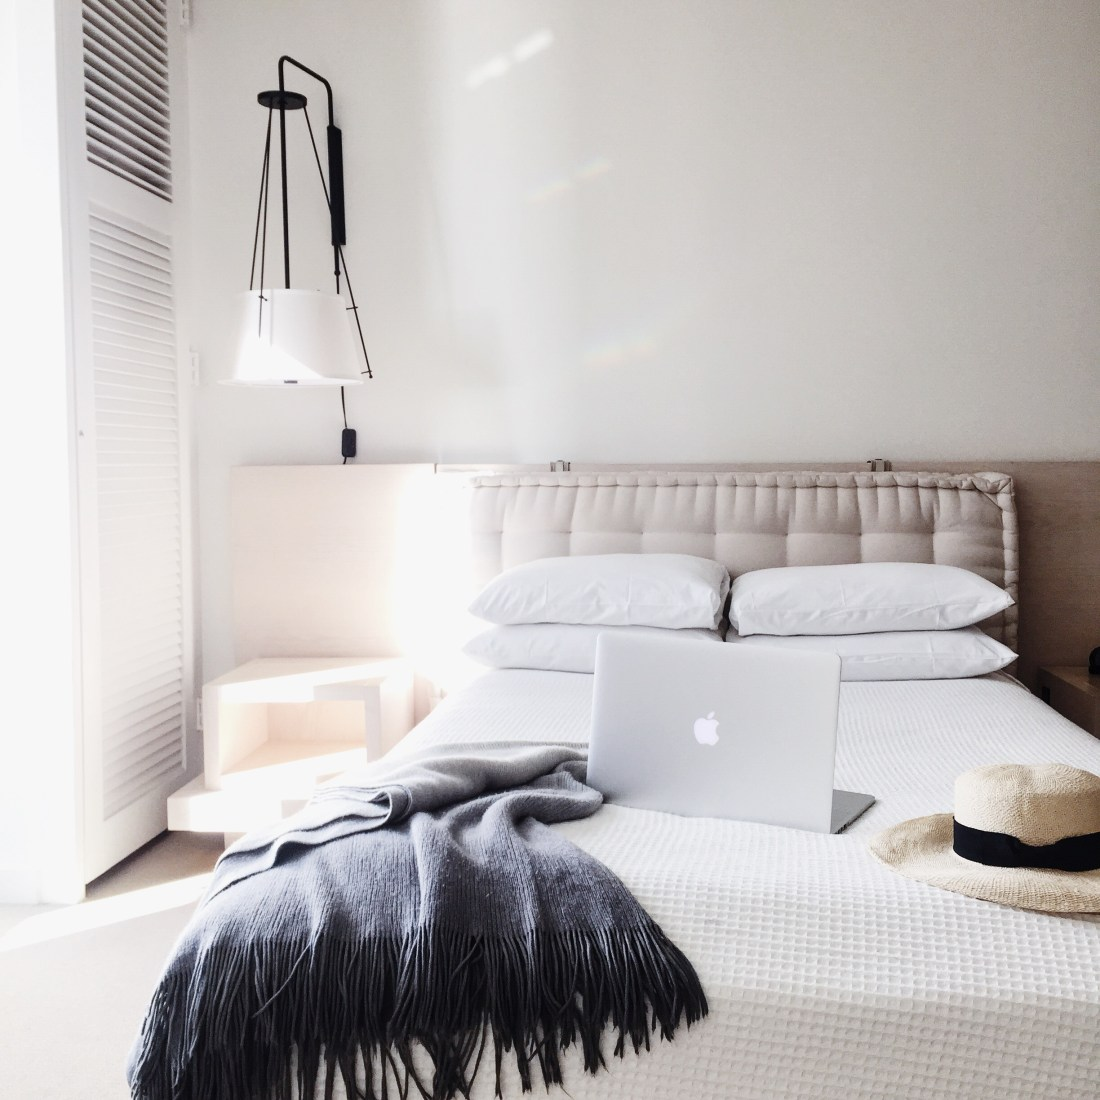 Workspace Goals | Home Interior Inspiration | Weekend Goals | The Modern Honolulu | Best Hotels in Hawaii | Drinks at the Pool | Best Places to Stay in Honolulu | Travel Guide to Oahu via @elanaloo + elanaloo.com